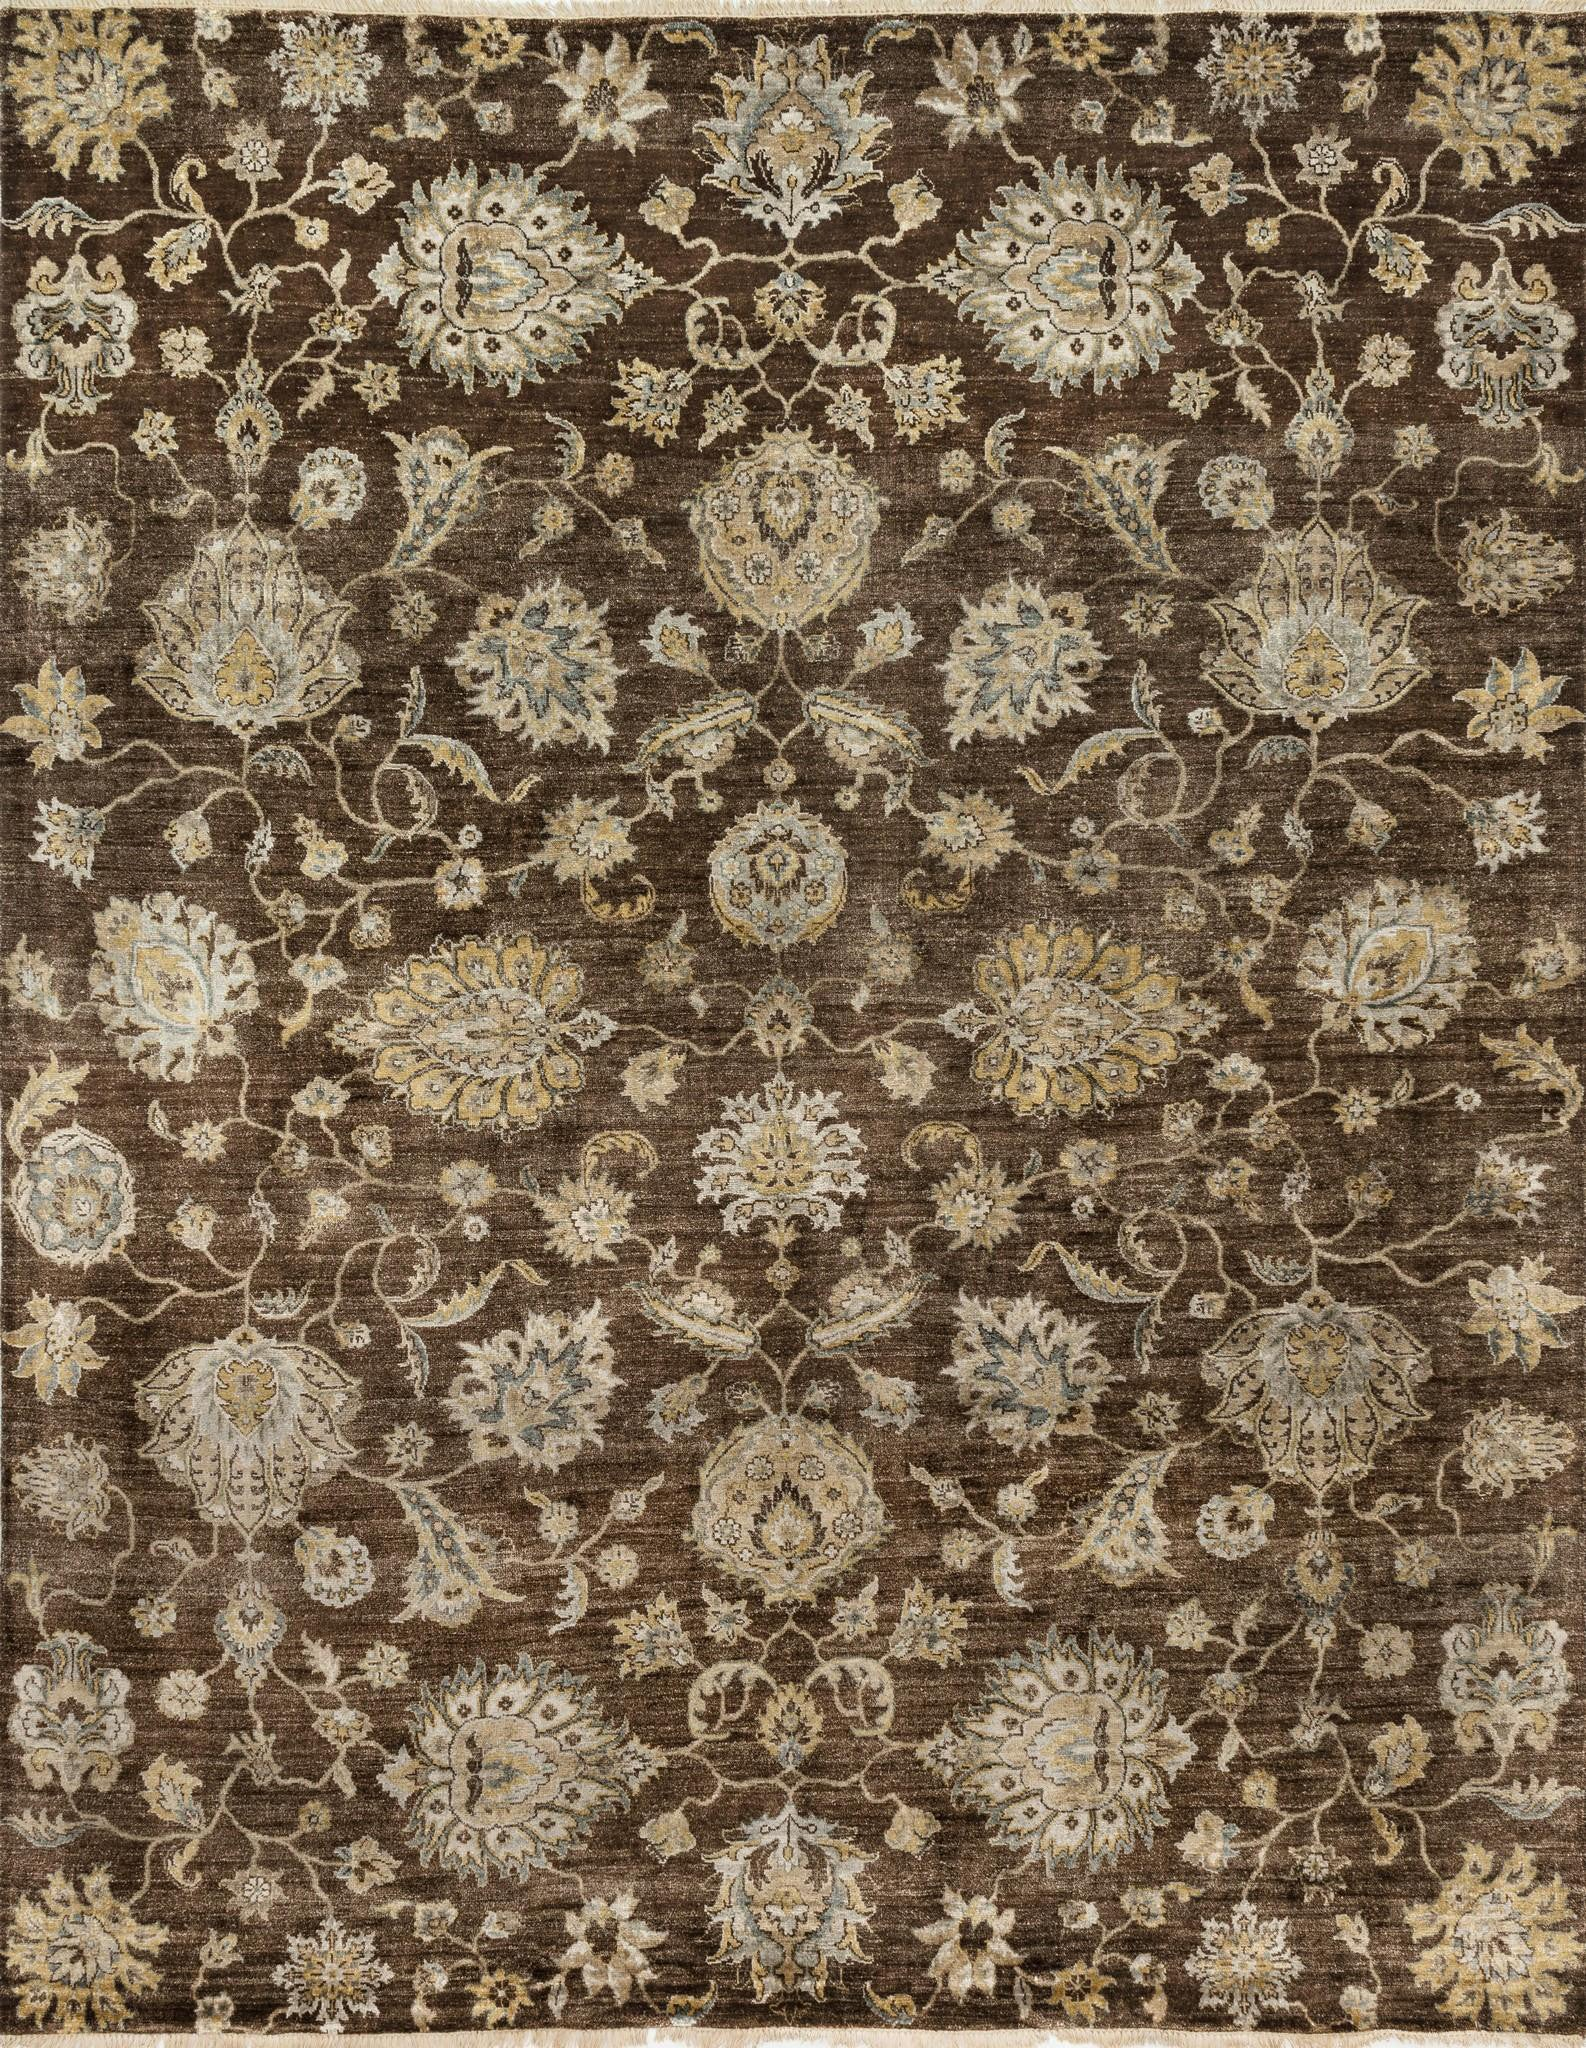 Loloi Kensington KG-04 Turkish Coffee Area Rug by Henrietta Spencer-Churchill main image